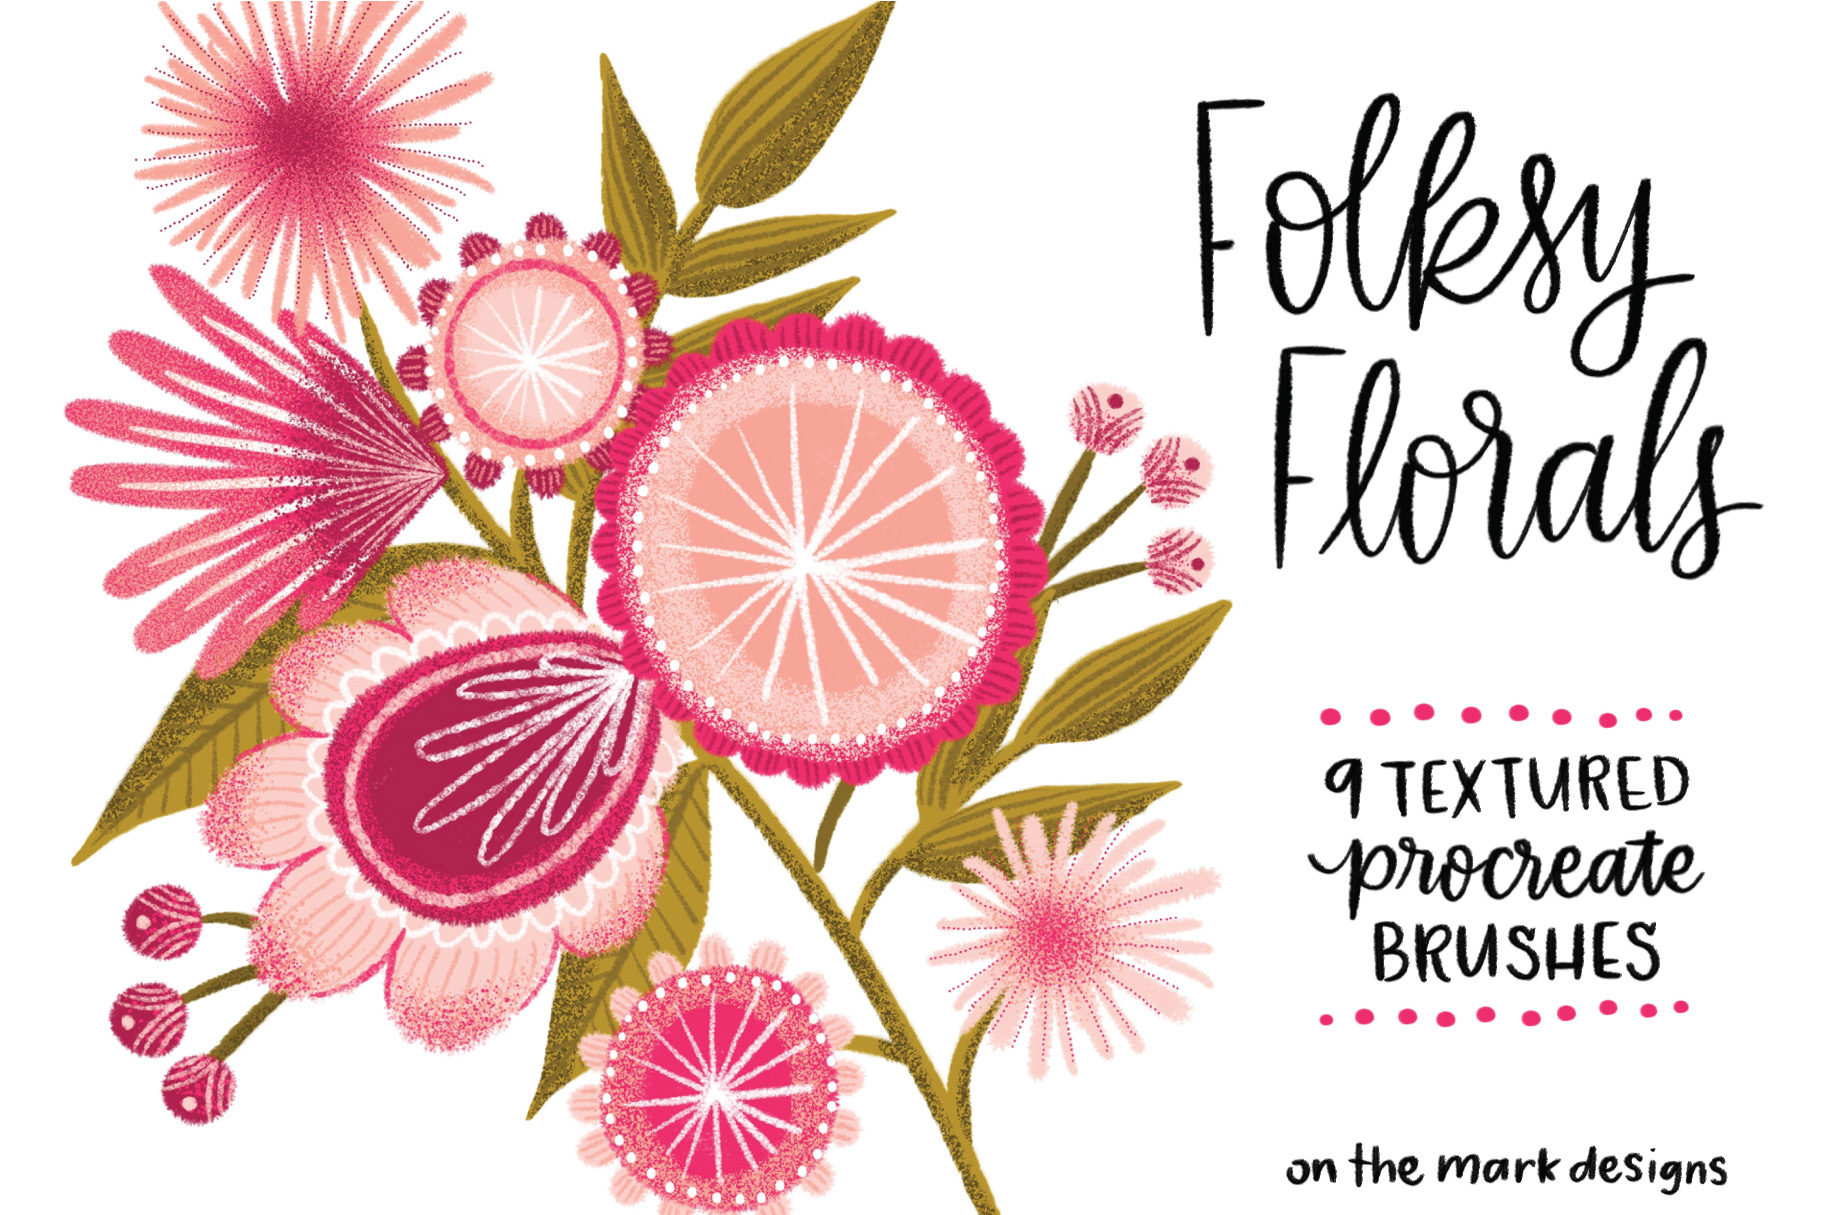 Folksy Florals Textured Procreate Brushes